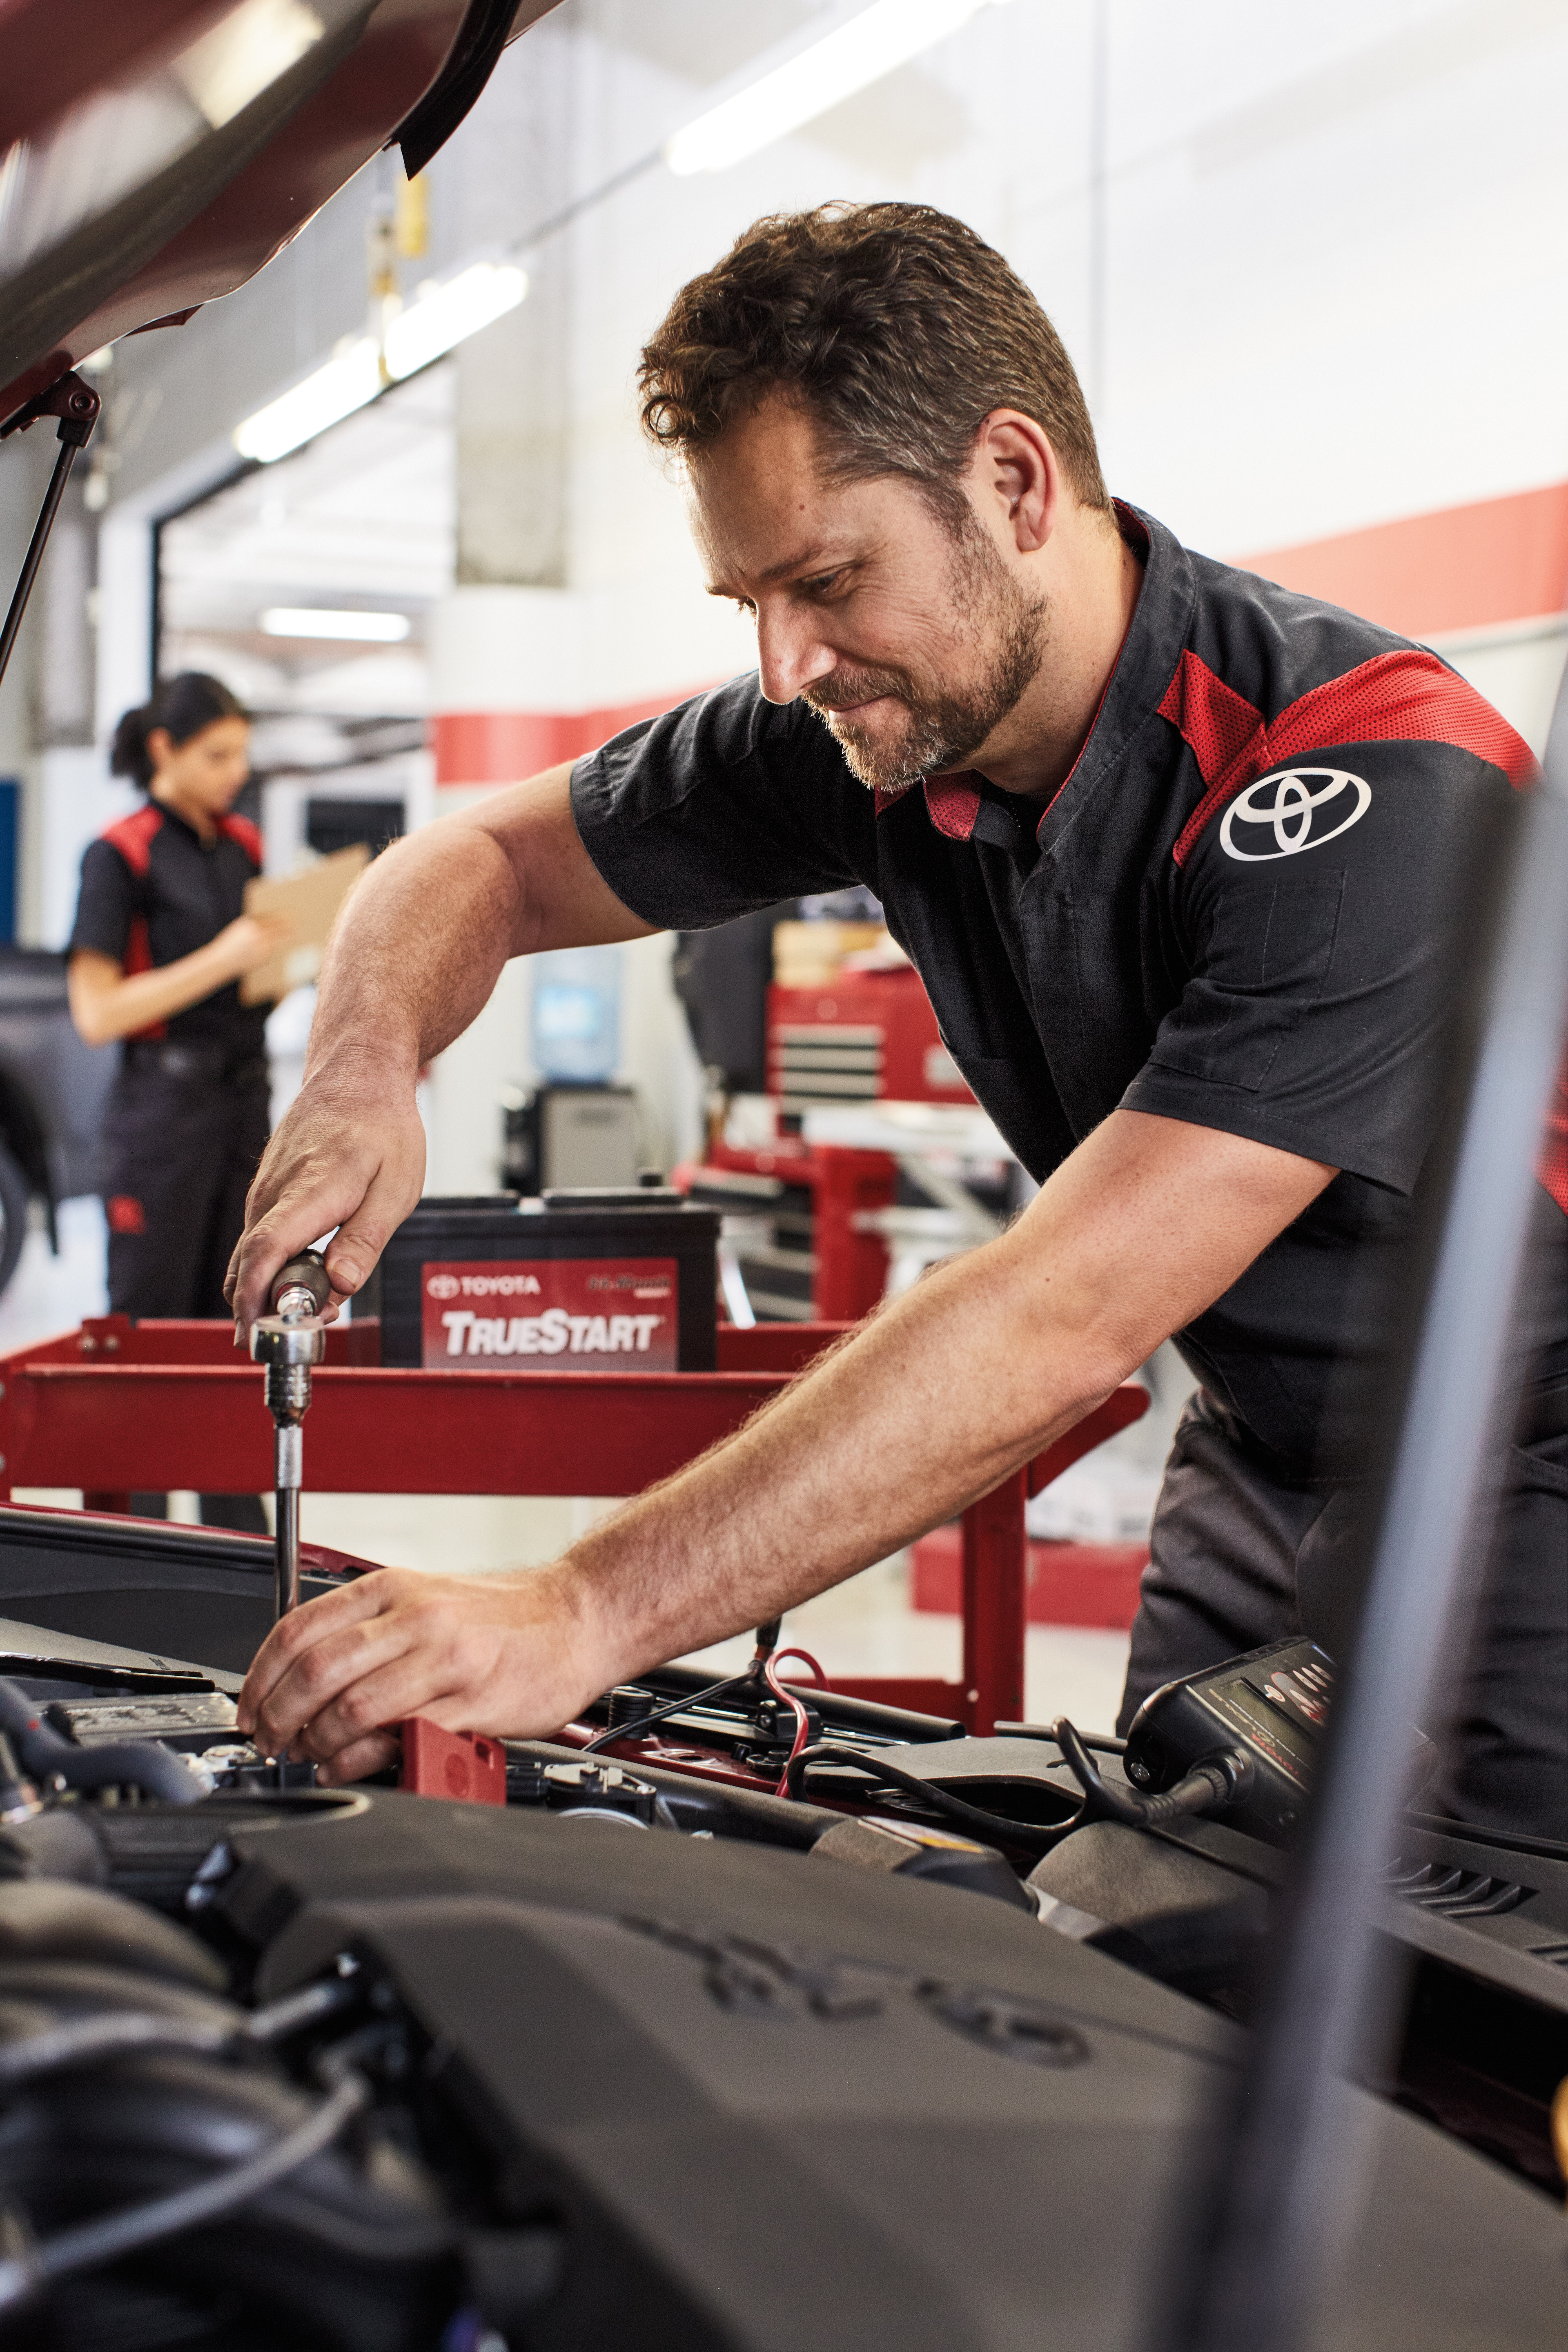 Boch Toyota is a Family Owned Dealership near Boston, MA | Toyota mechanic replacing battery in vehicle